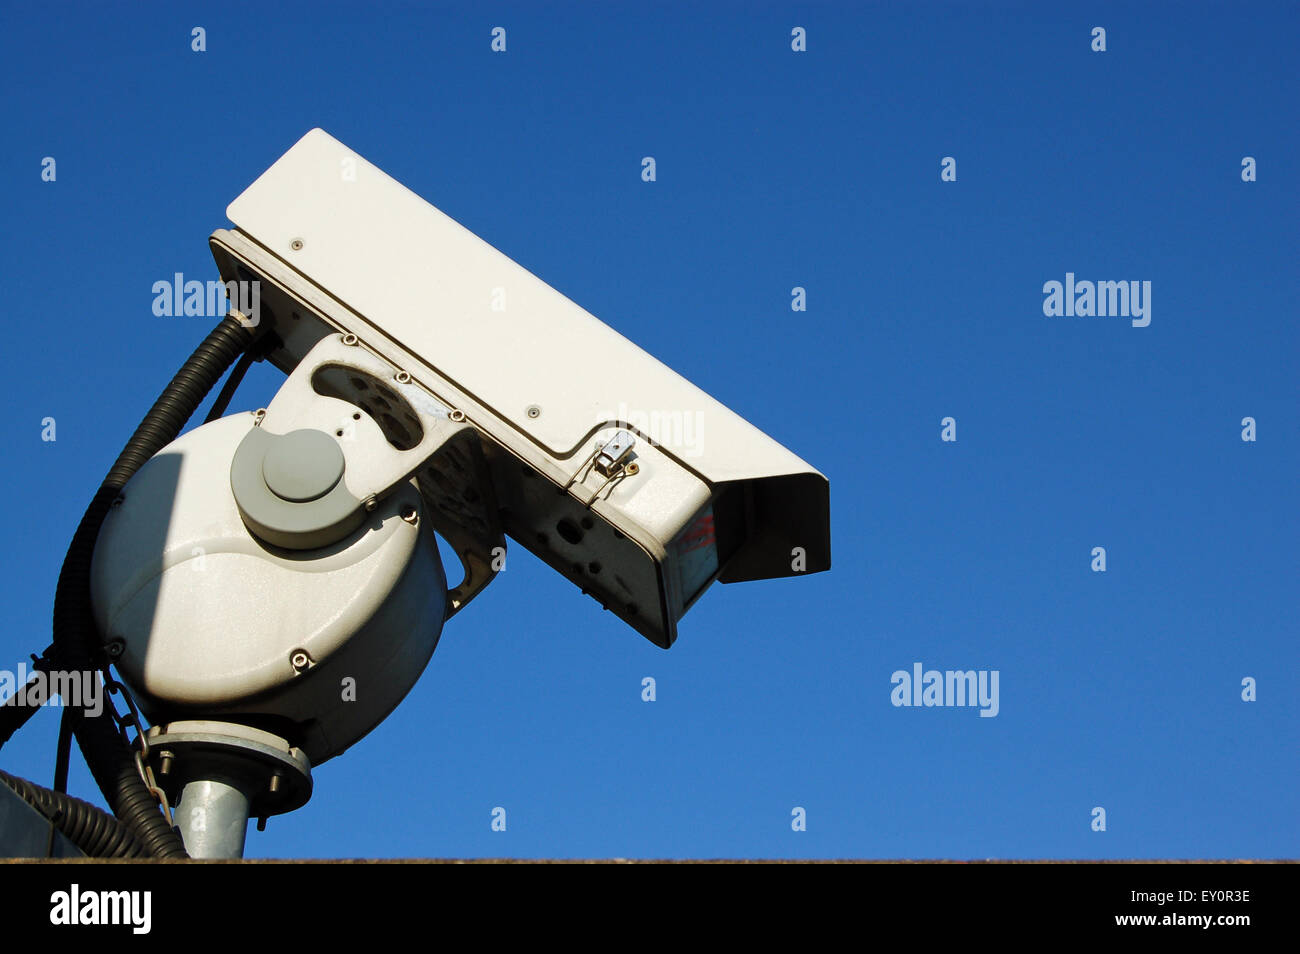 A closed circuit security camera photographed against a clear blue sky with space for copy. - Stock Image